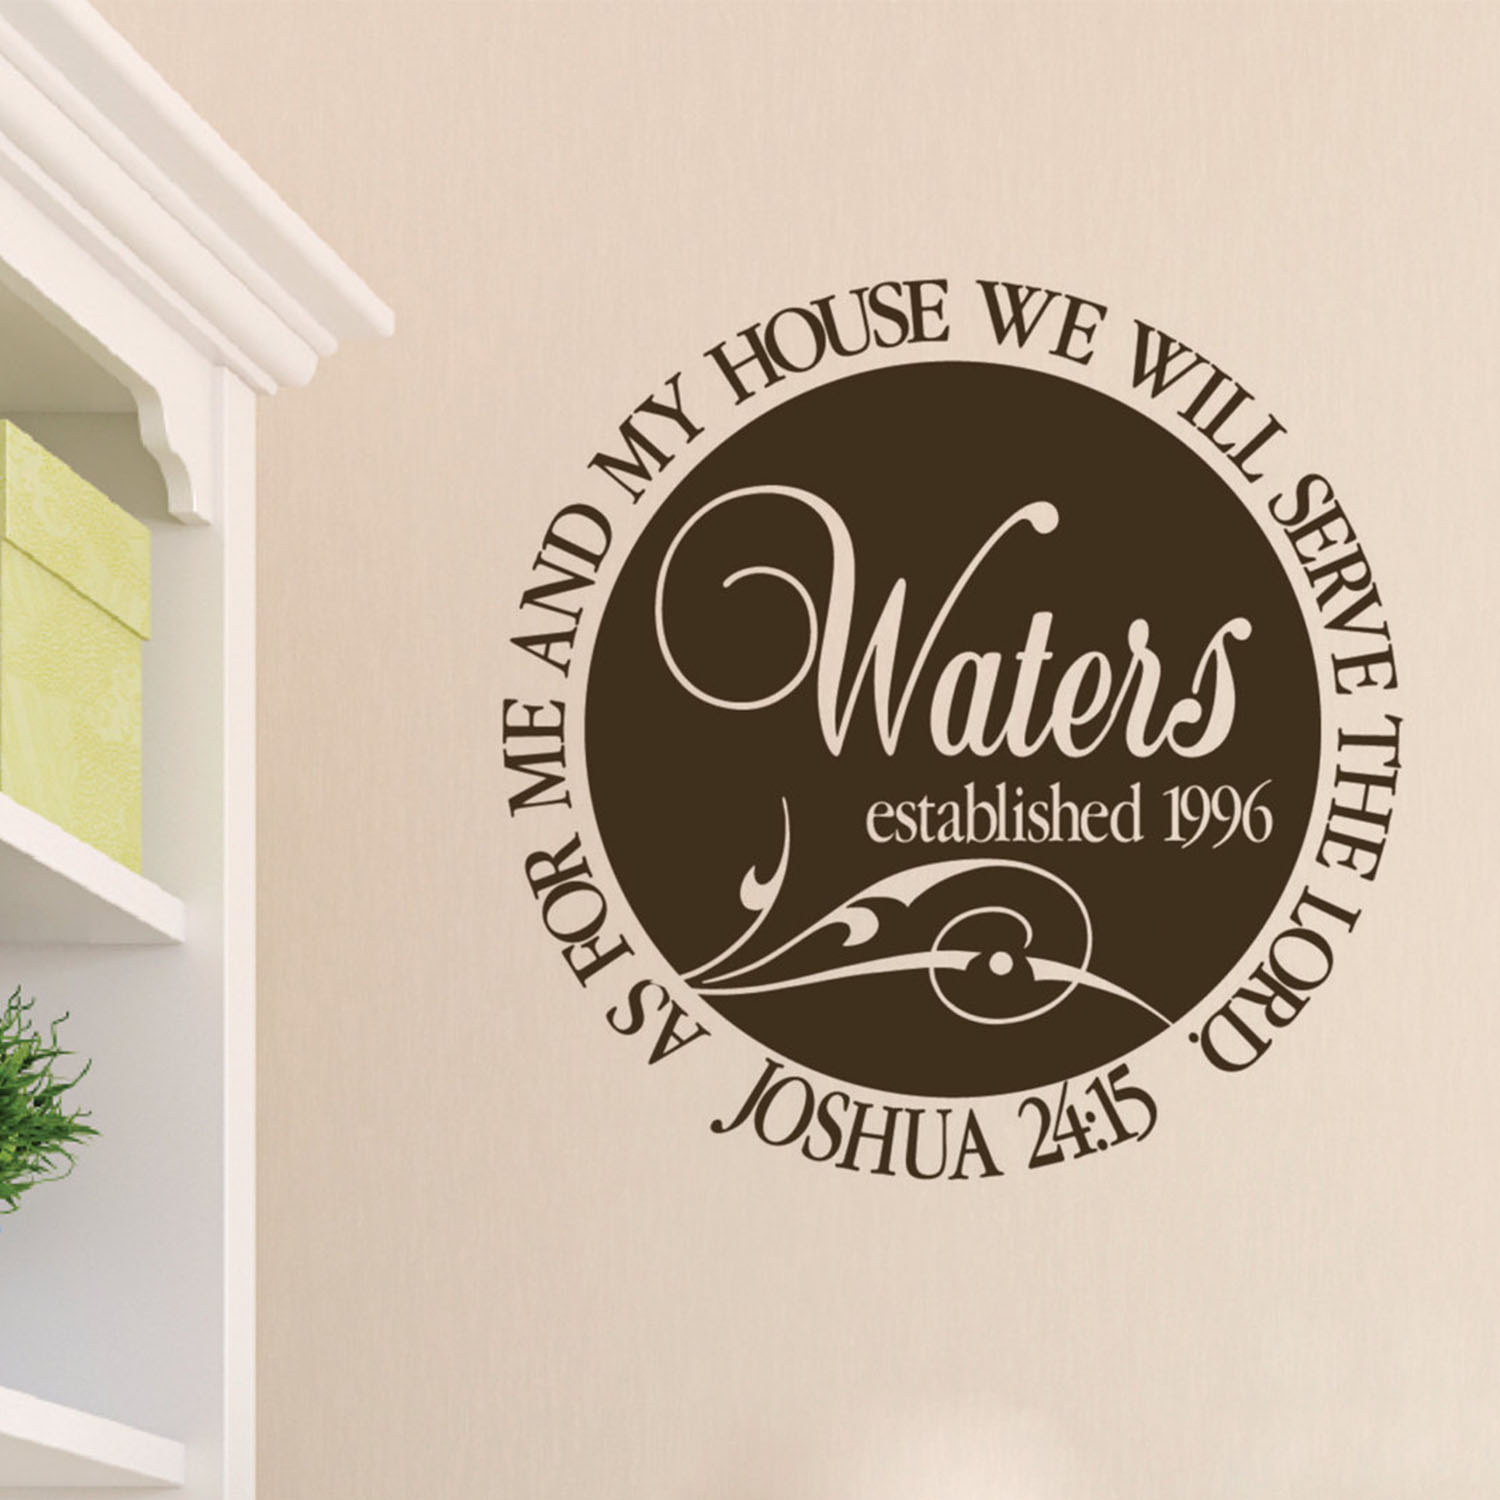 Joshua 24v15 Vinyl Wall Decal 14 As For Me And My House We Will